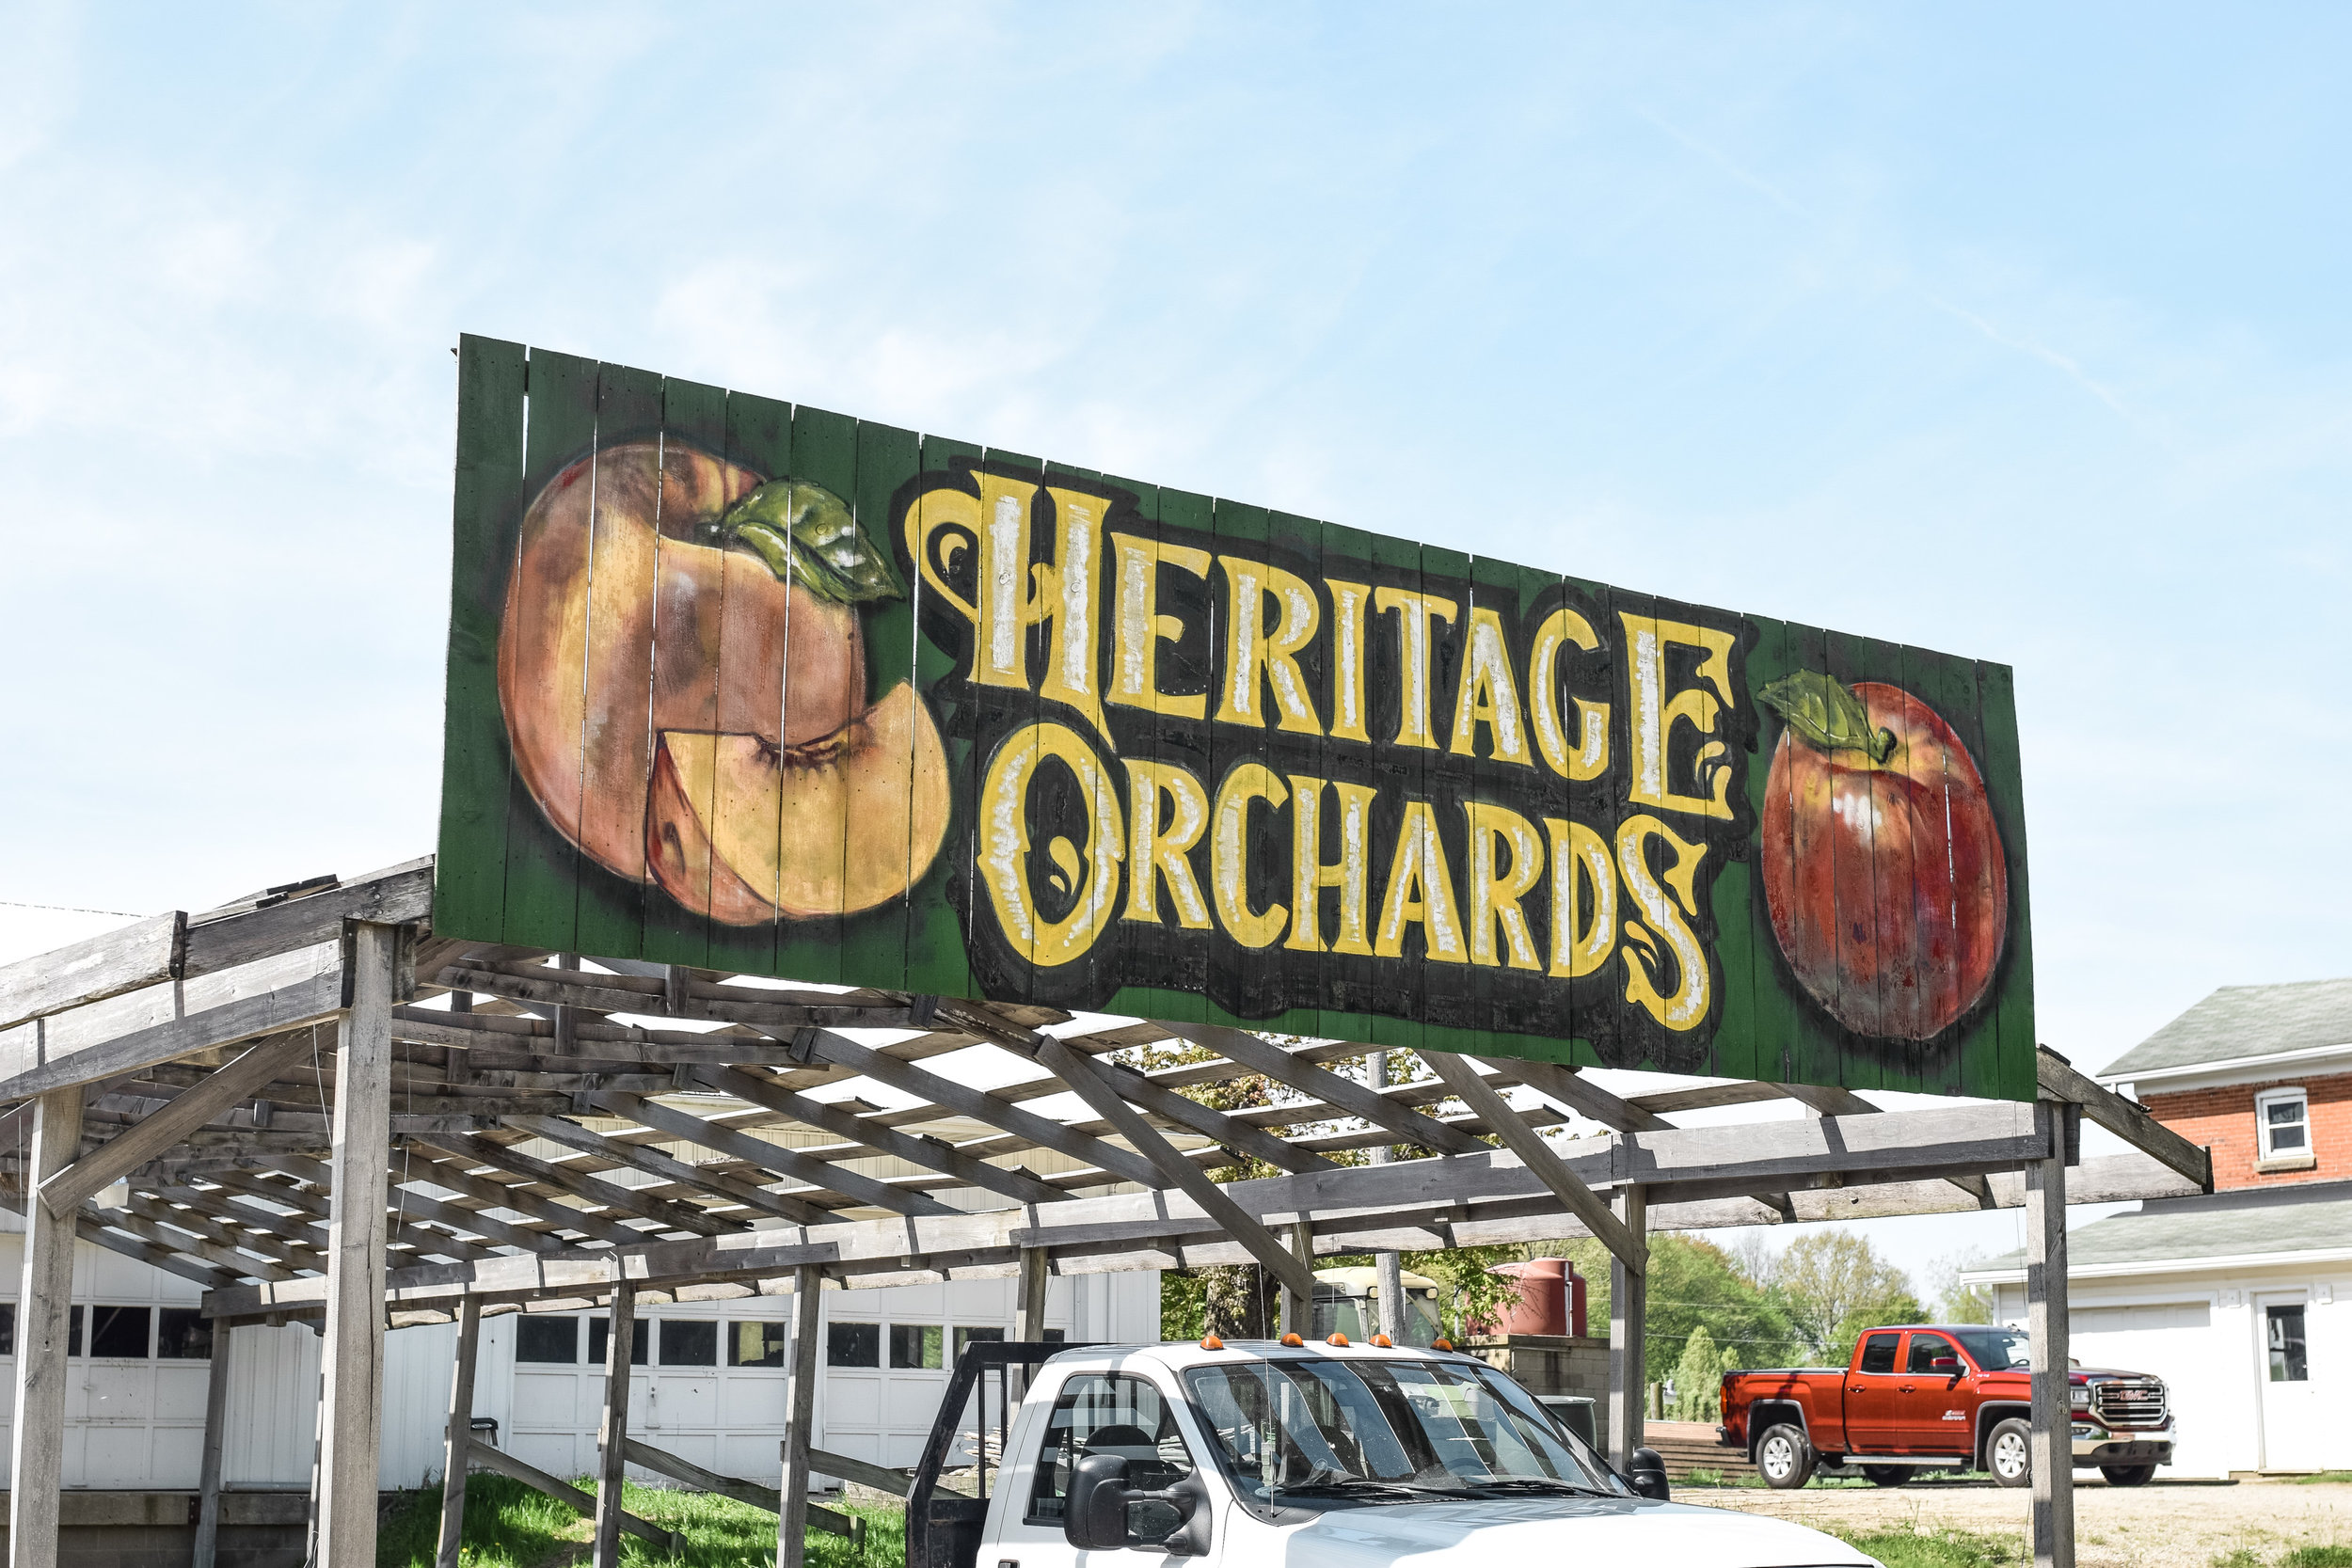 heritage orchards-14.jpg